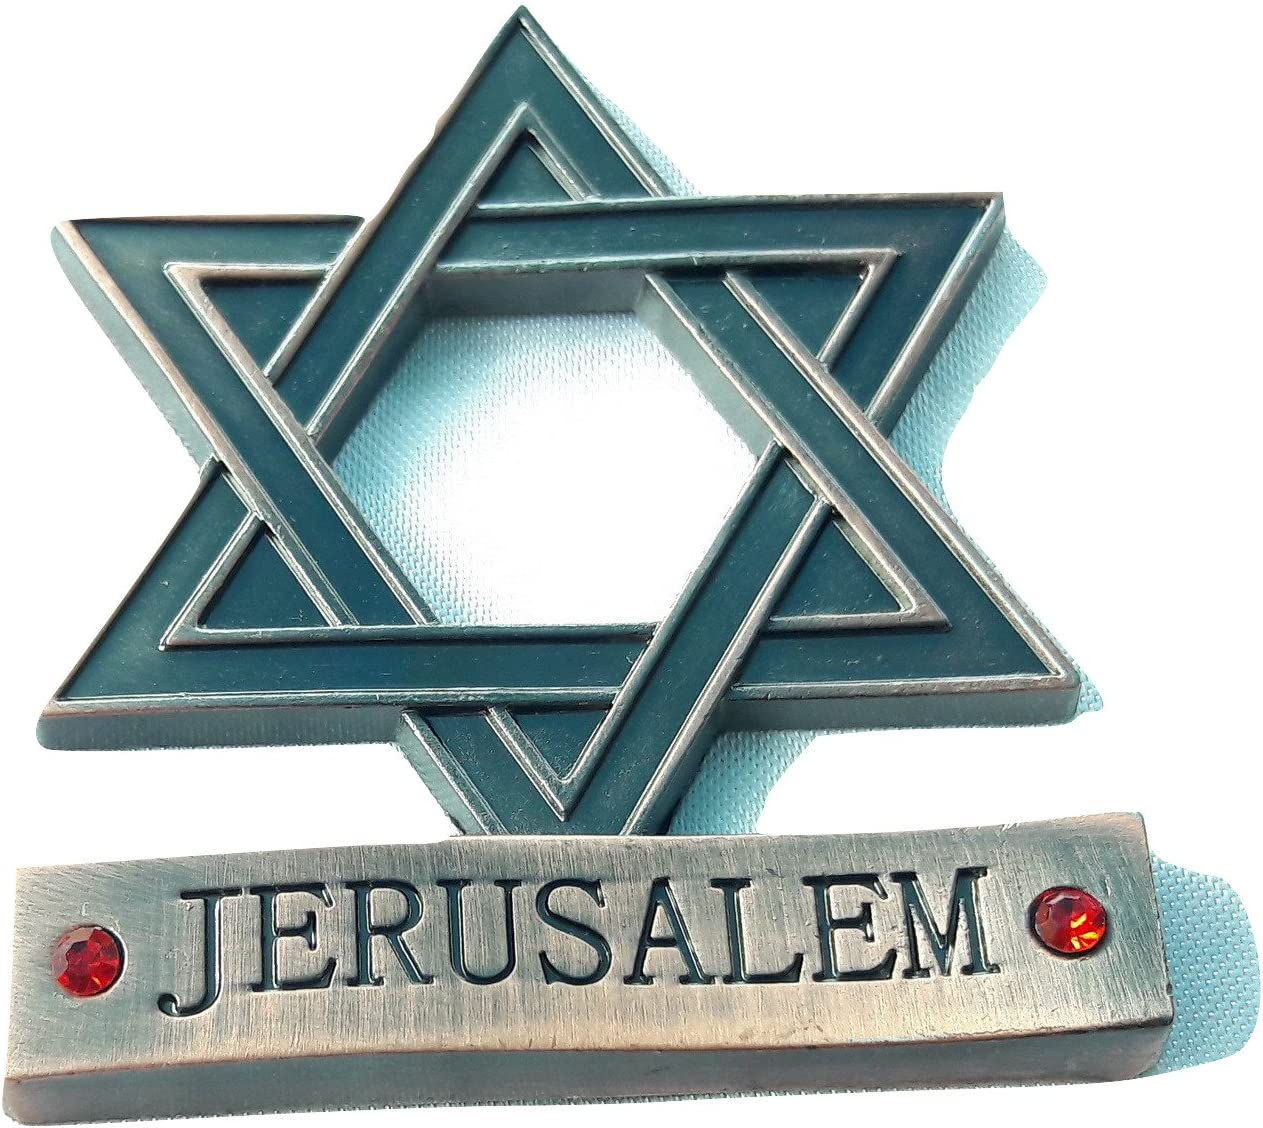 New Red metal Souvenir Fridge Magnet israel Jerusalem Star of David/Magen David